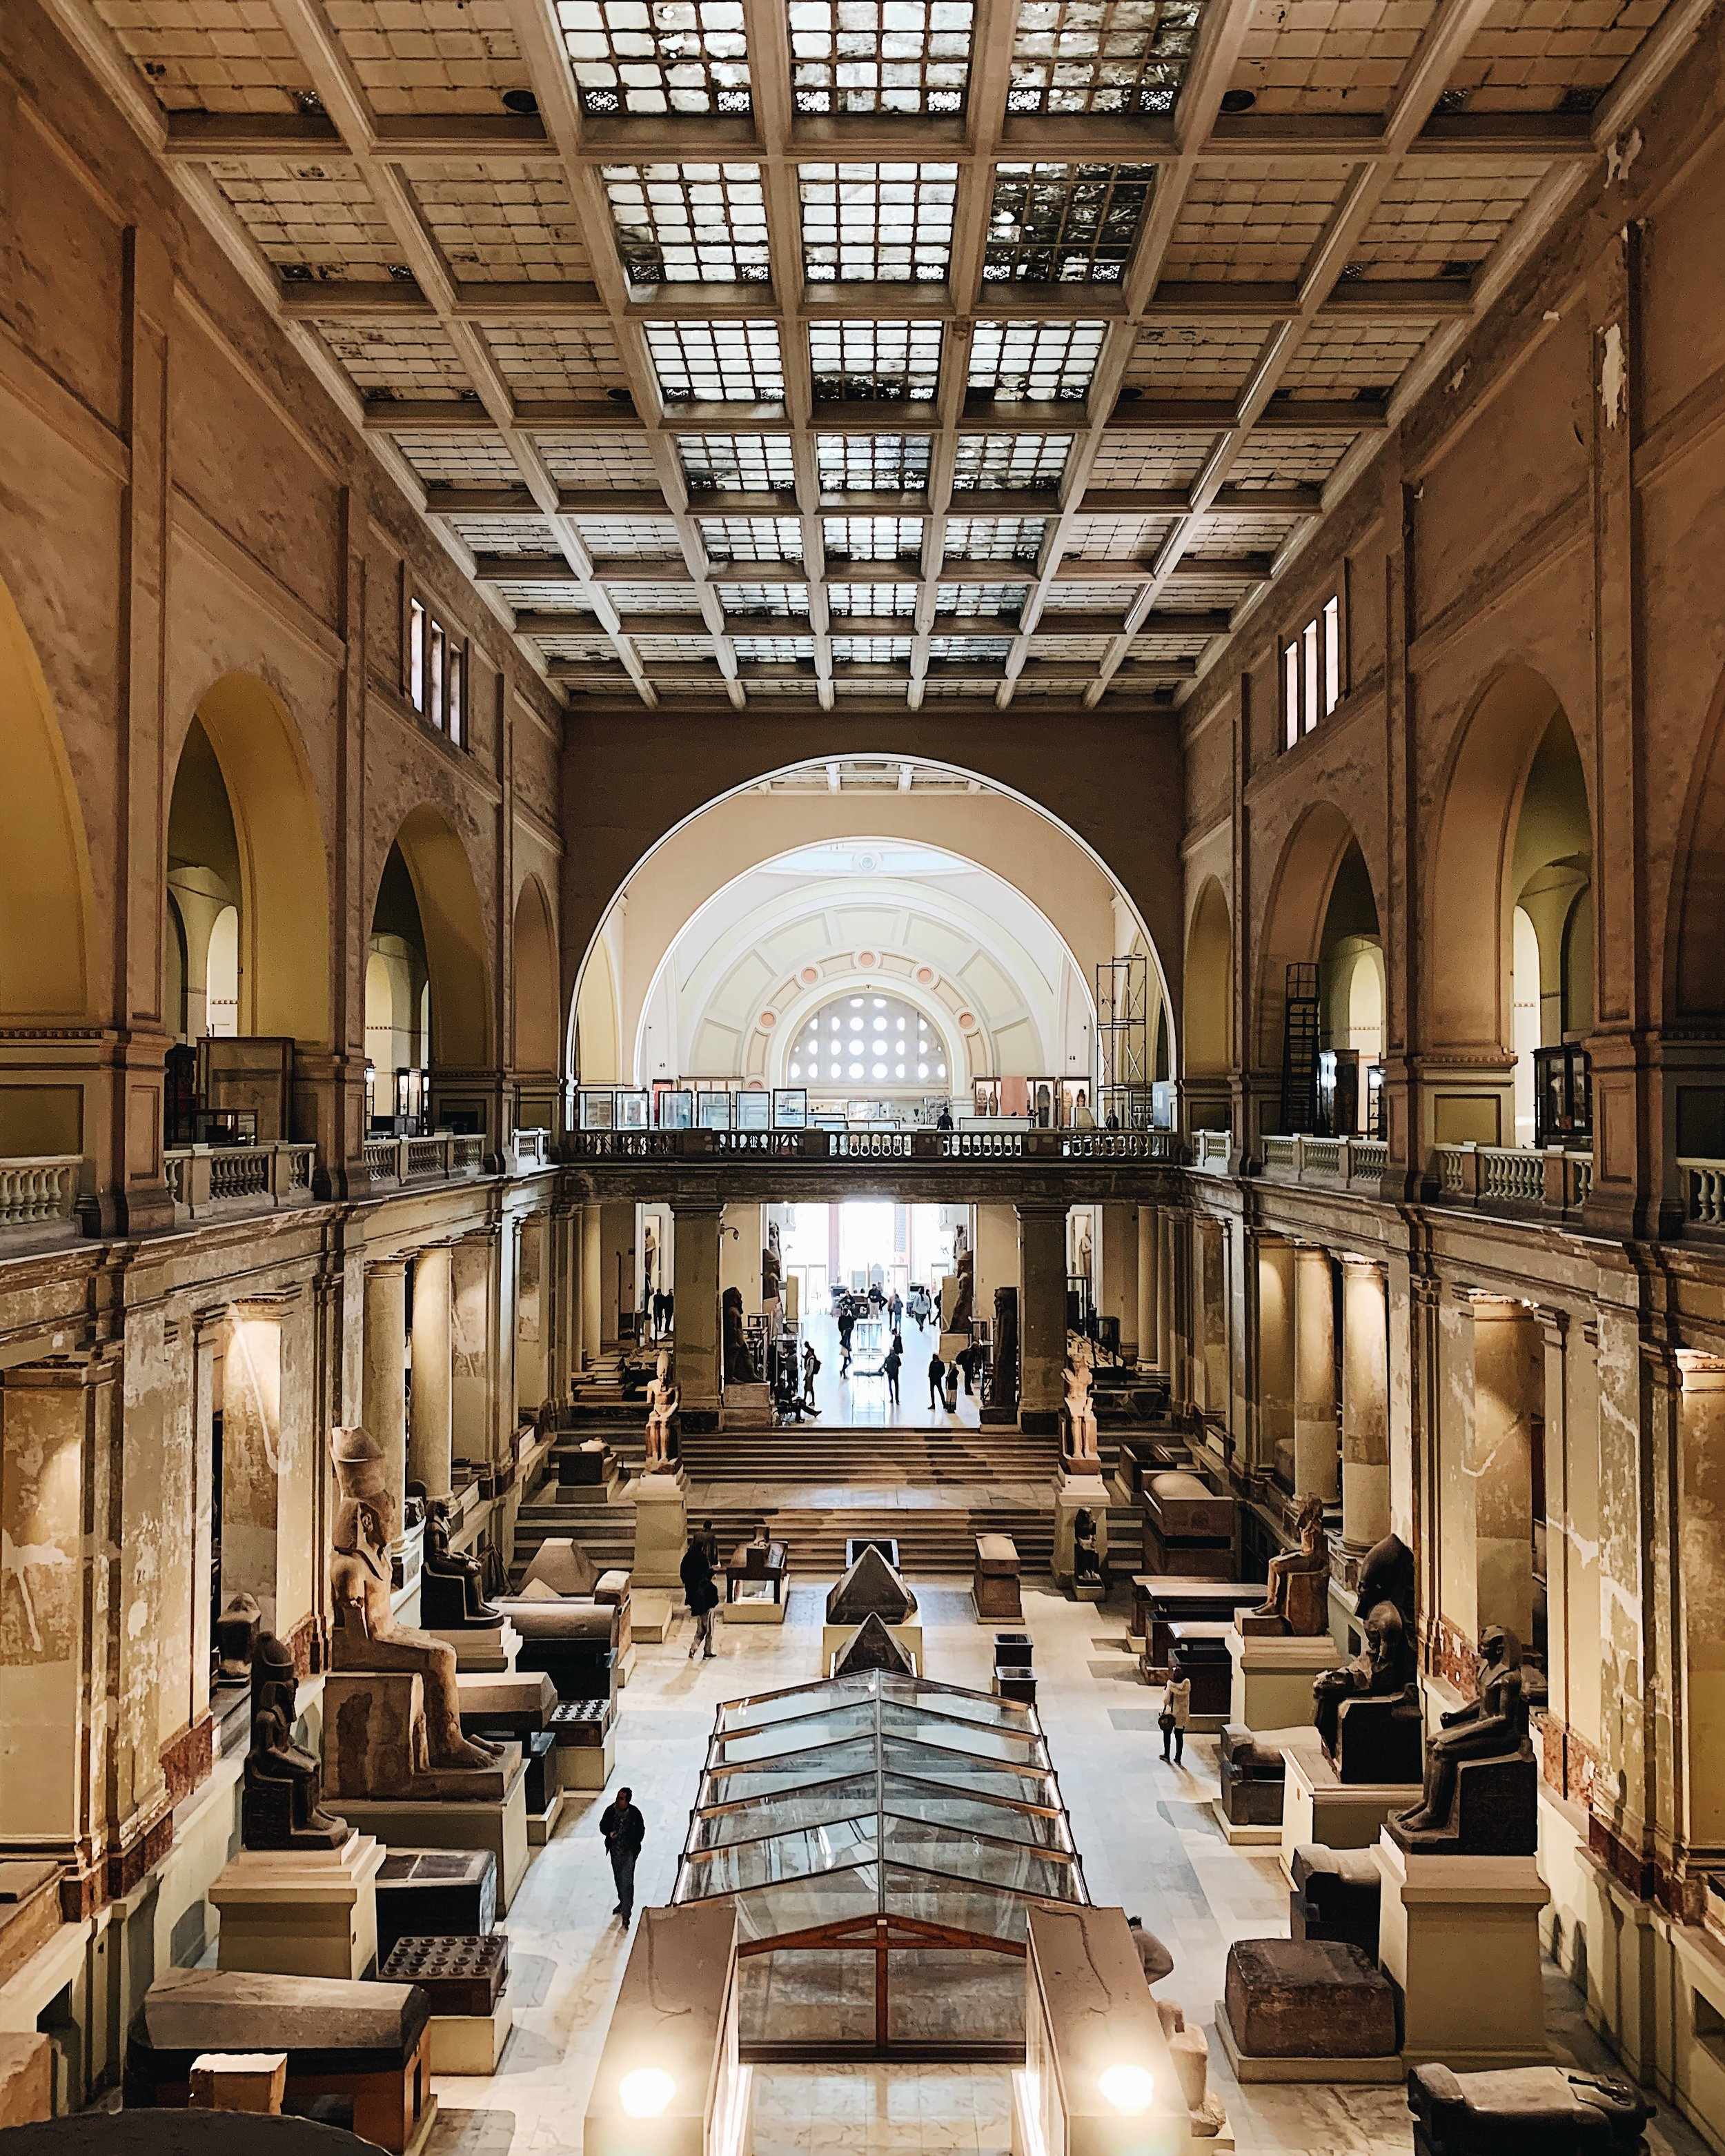 Egyptian Museum or Museum of Cairo, in Cairo, Egypt